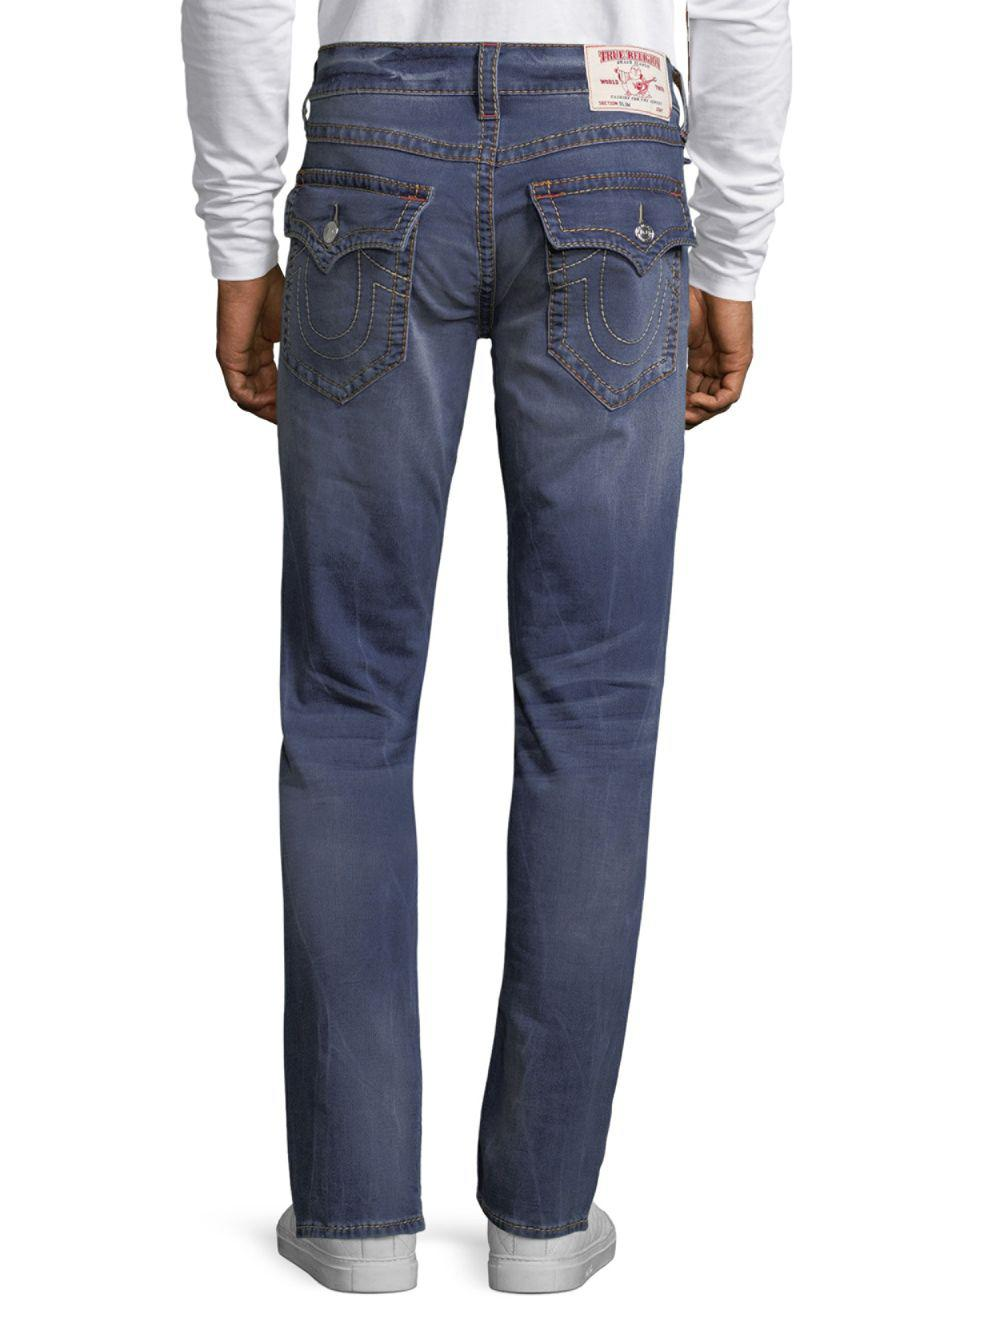 True Religion Denim Slim-fit Big T Jeans in Blue for Men